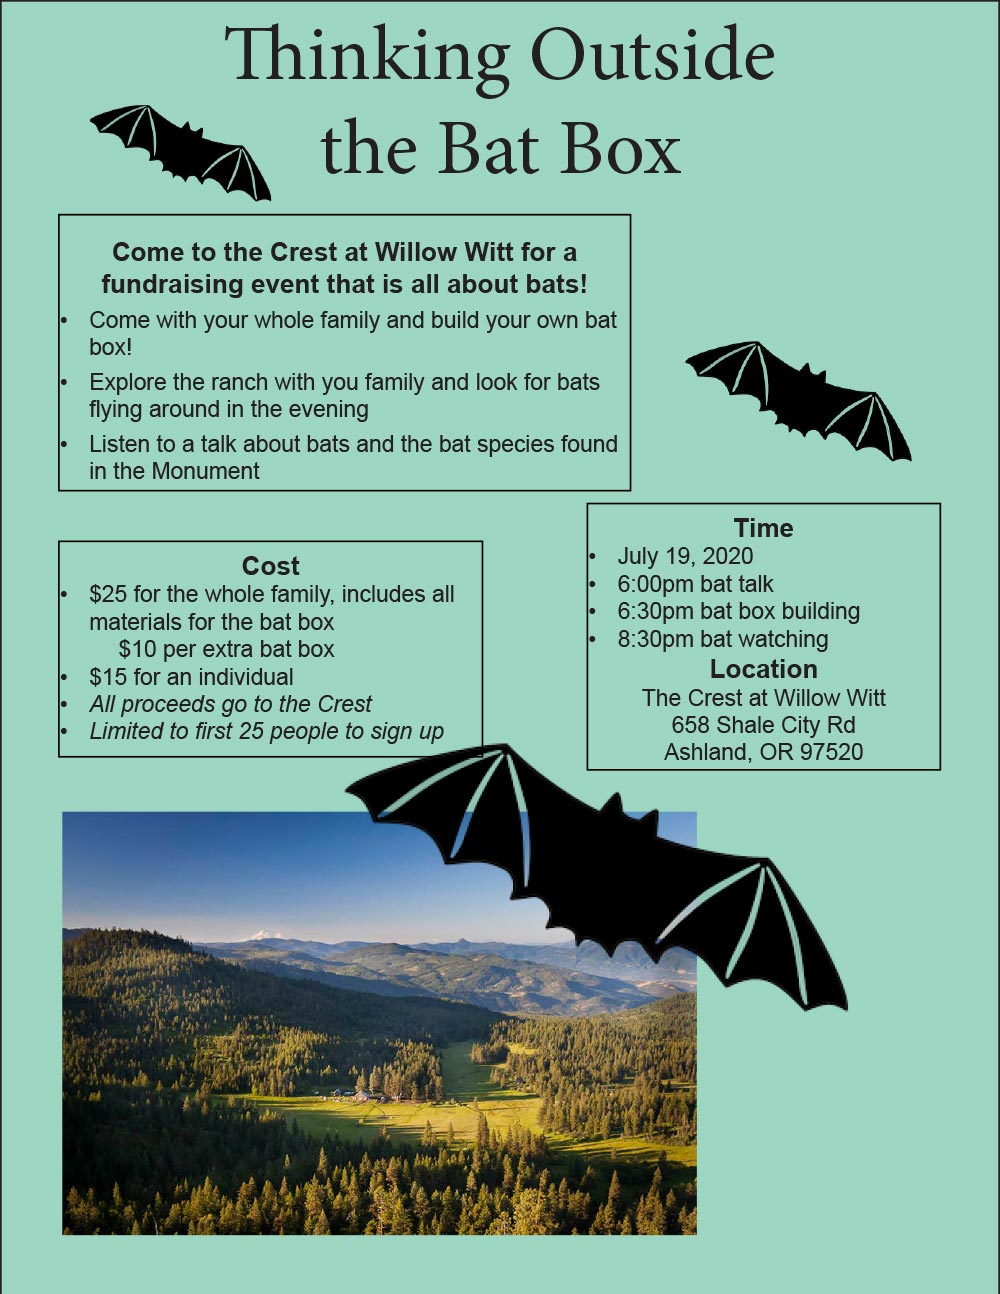 July 19, 2020 Fundraising Event - Thinking Outside the Bat Box